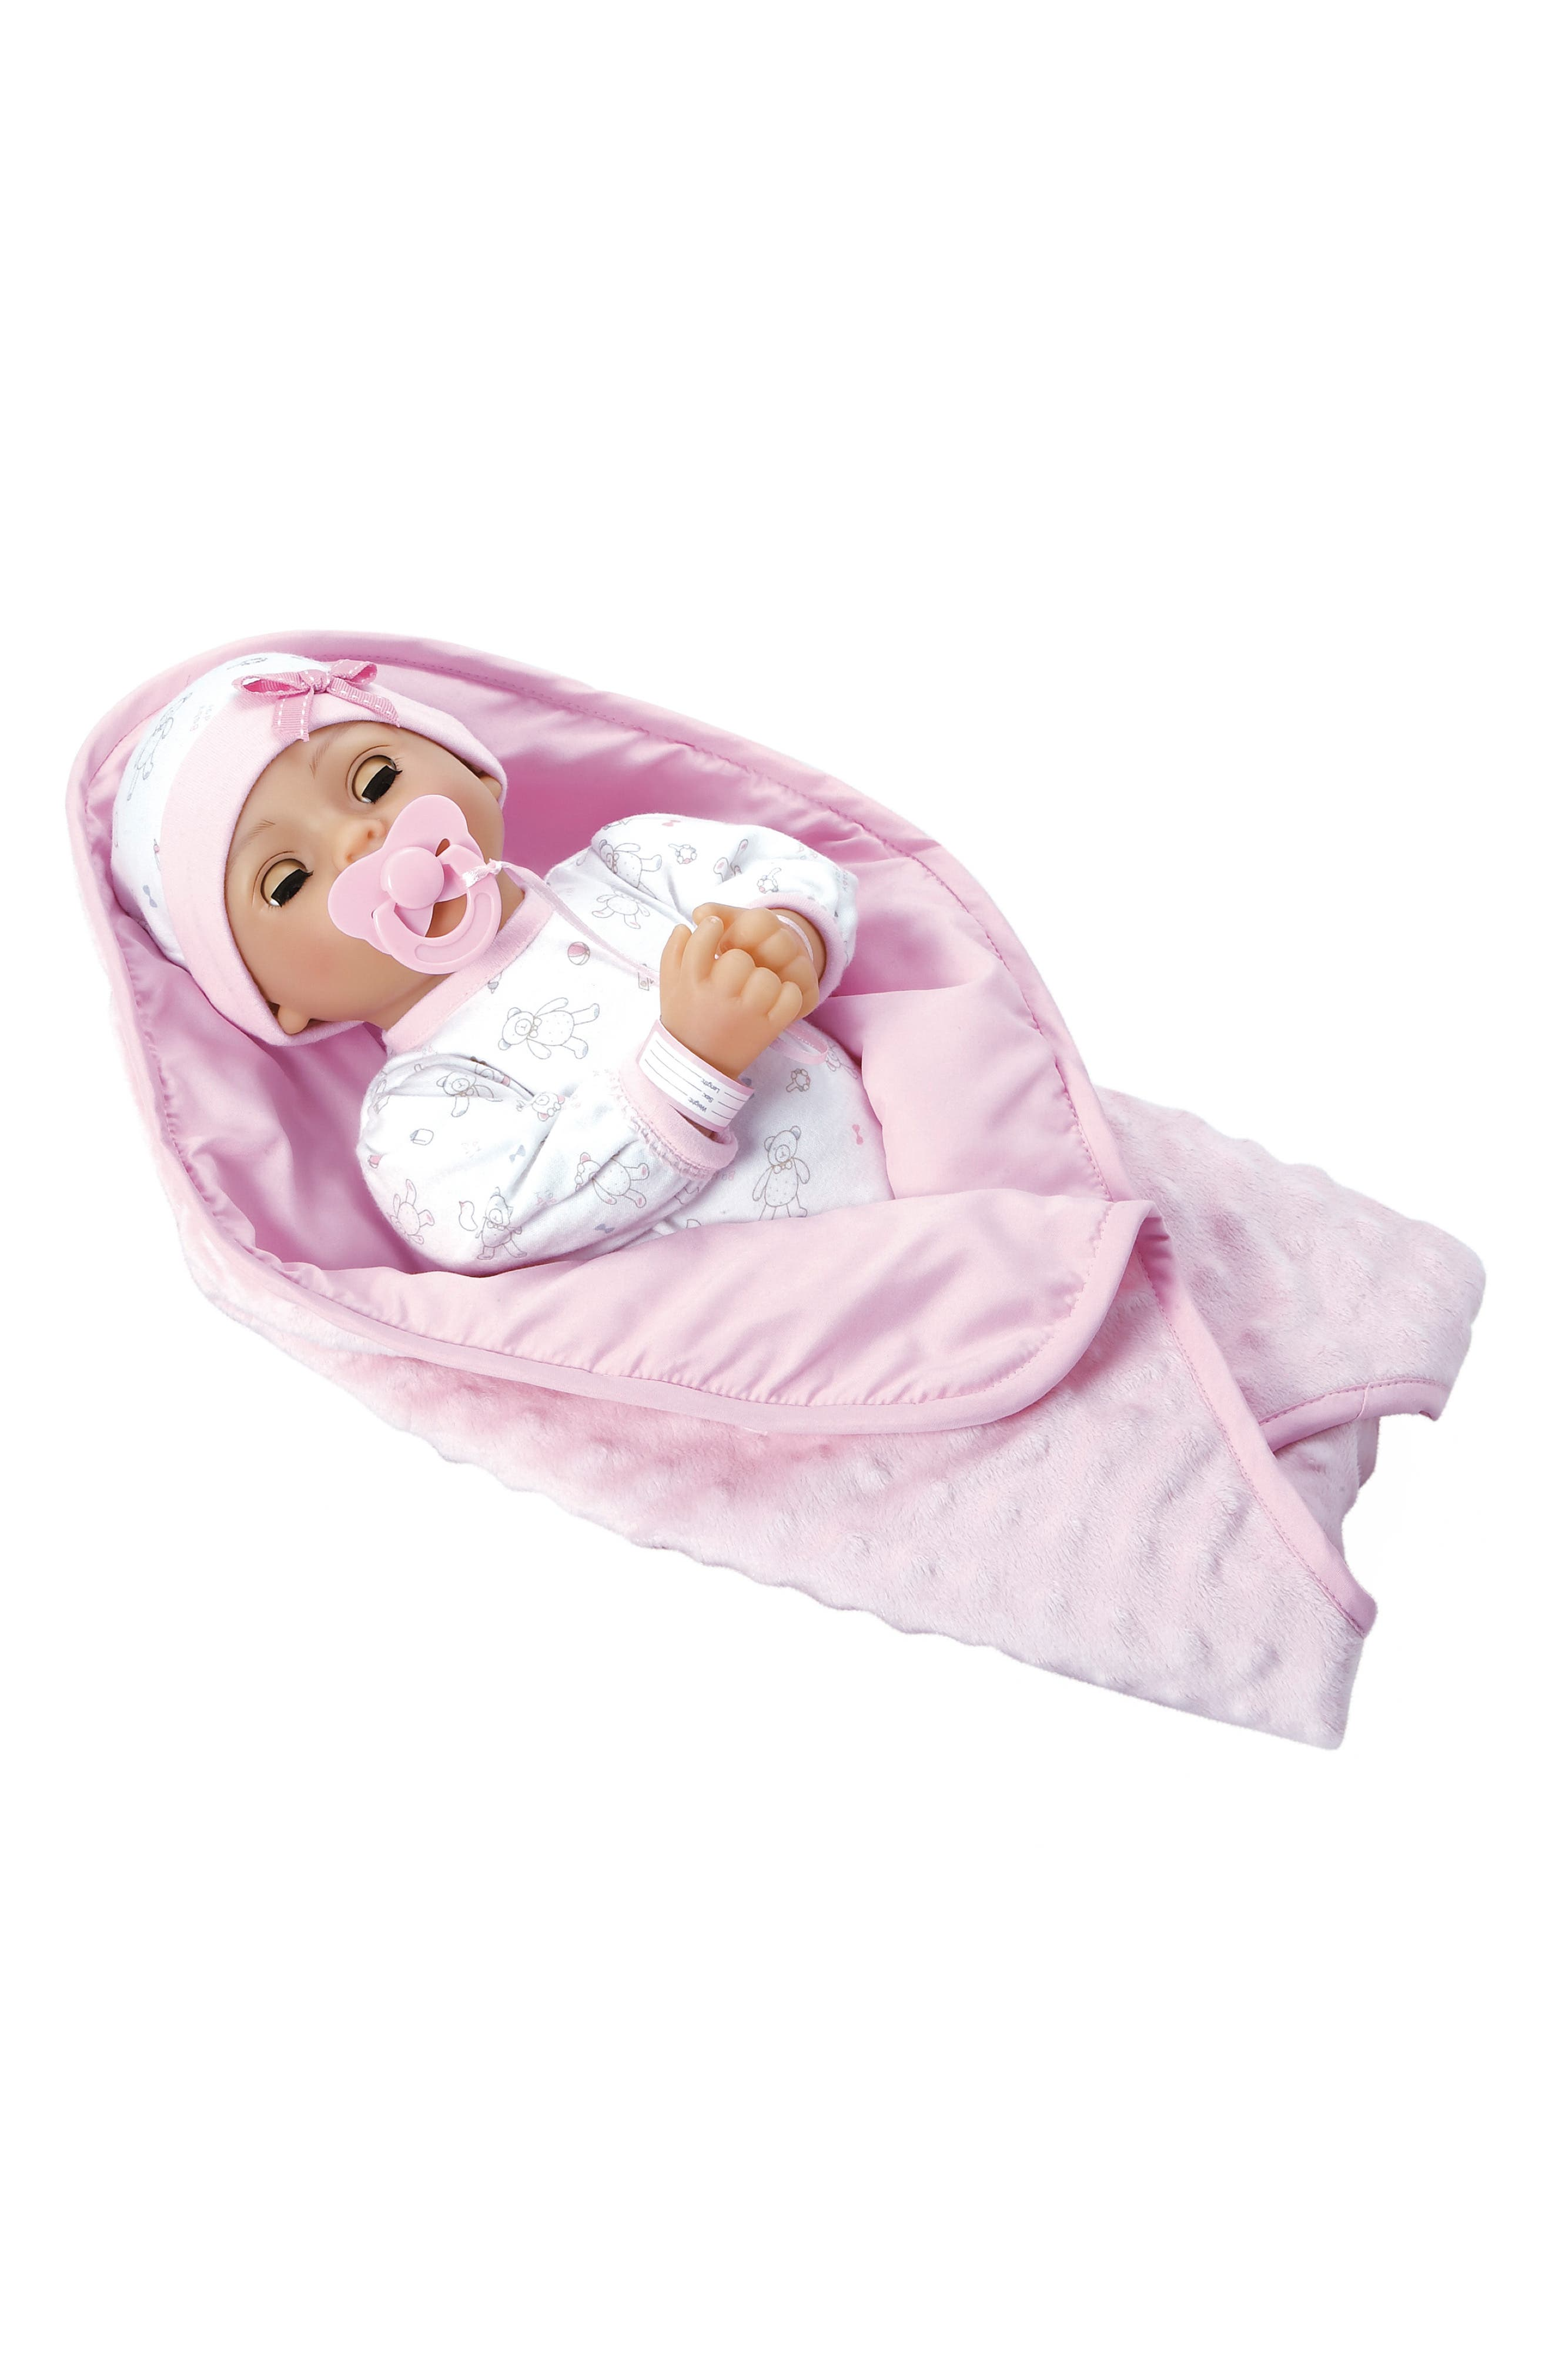 ADORA, Hope Baby Doll with Adoption Certificate, Alternate thumbnail 3, color, HOPE